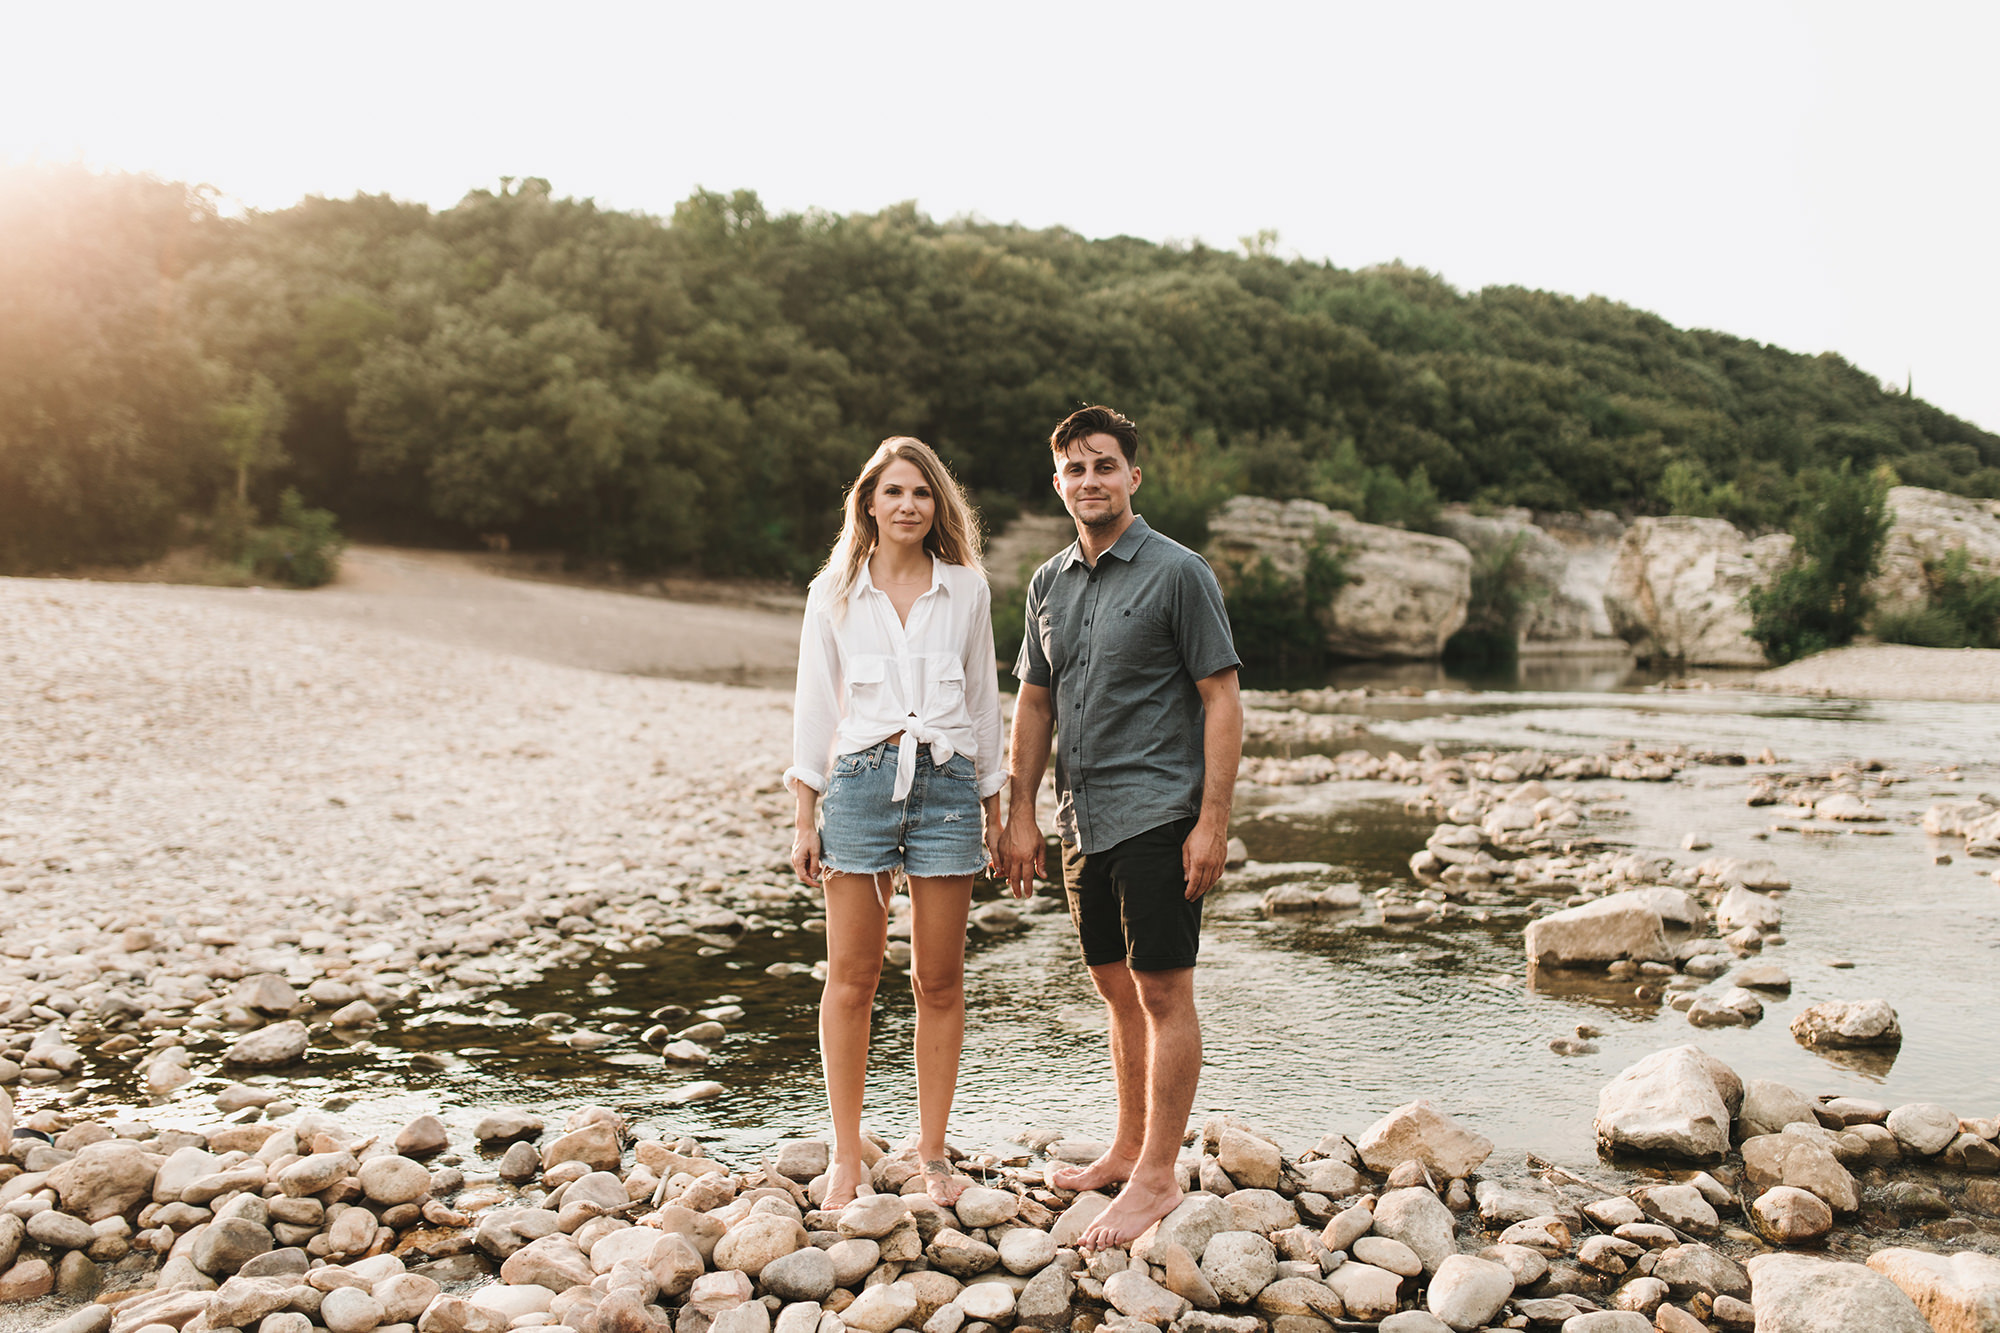 engagement_session_ardeche_river_C+M_neupapphotography-8.jpg